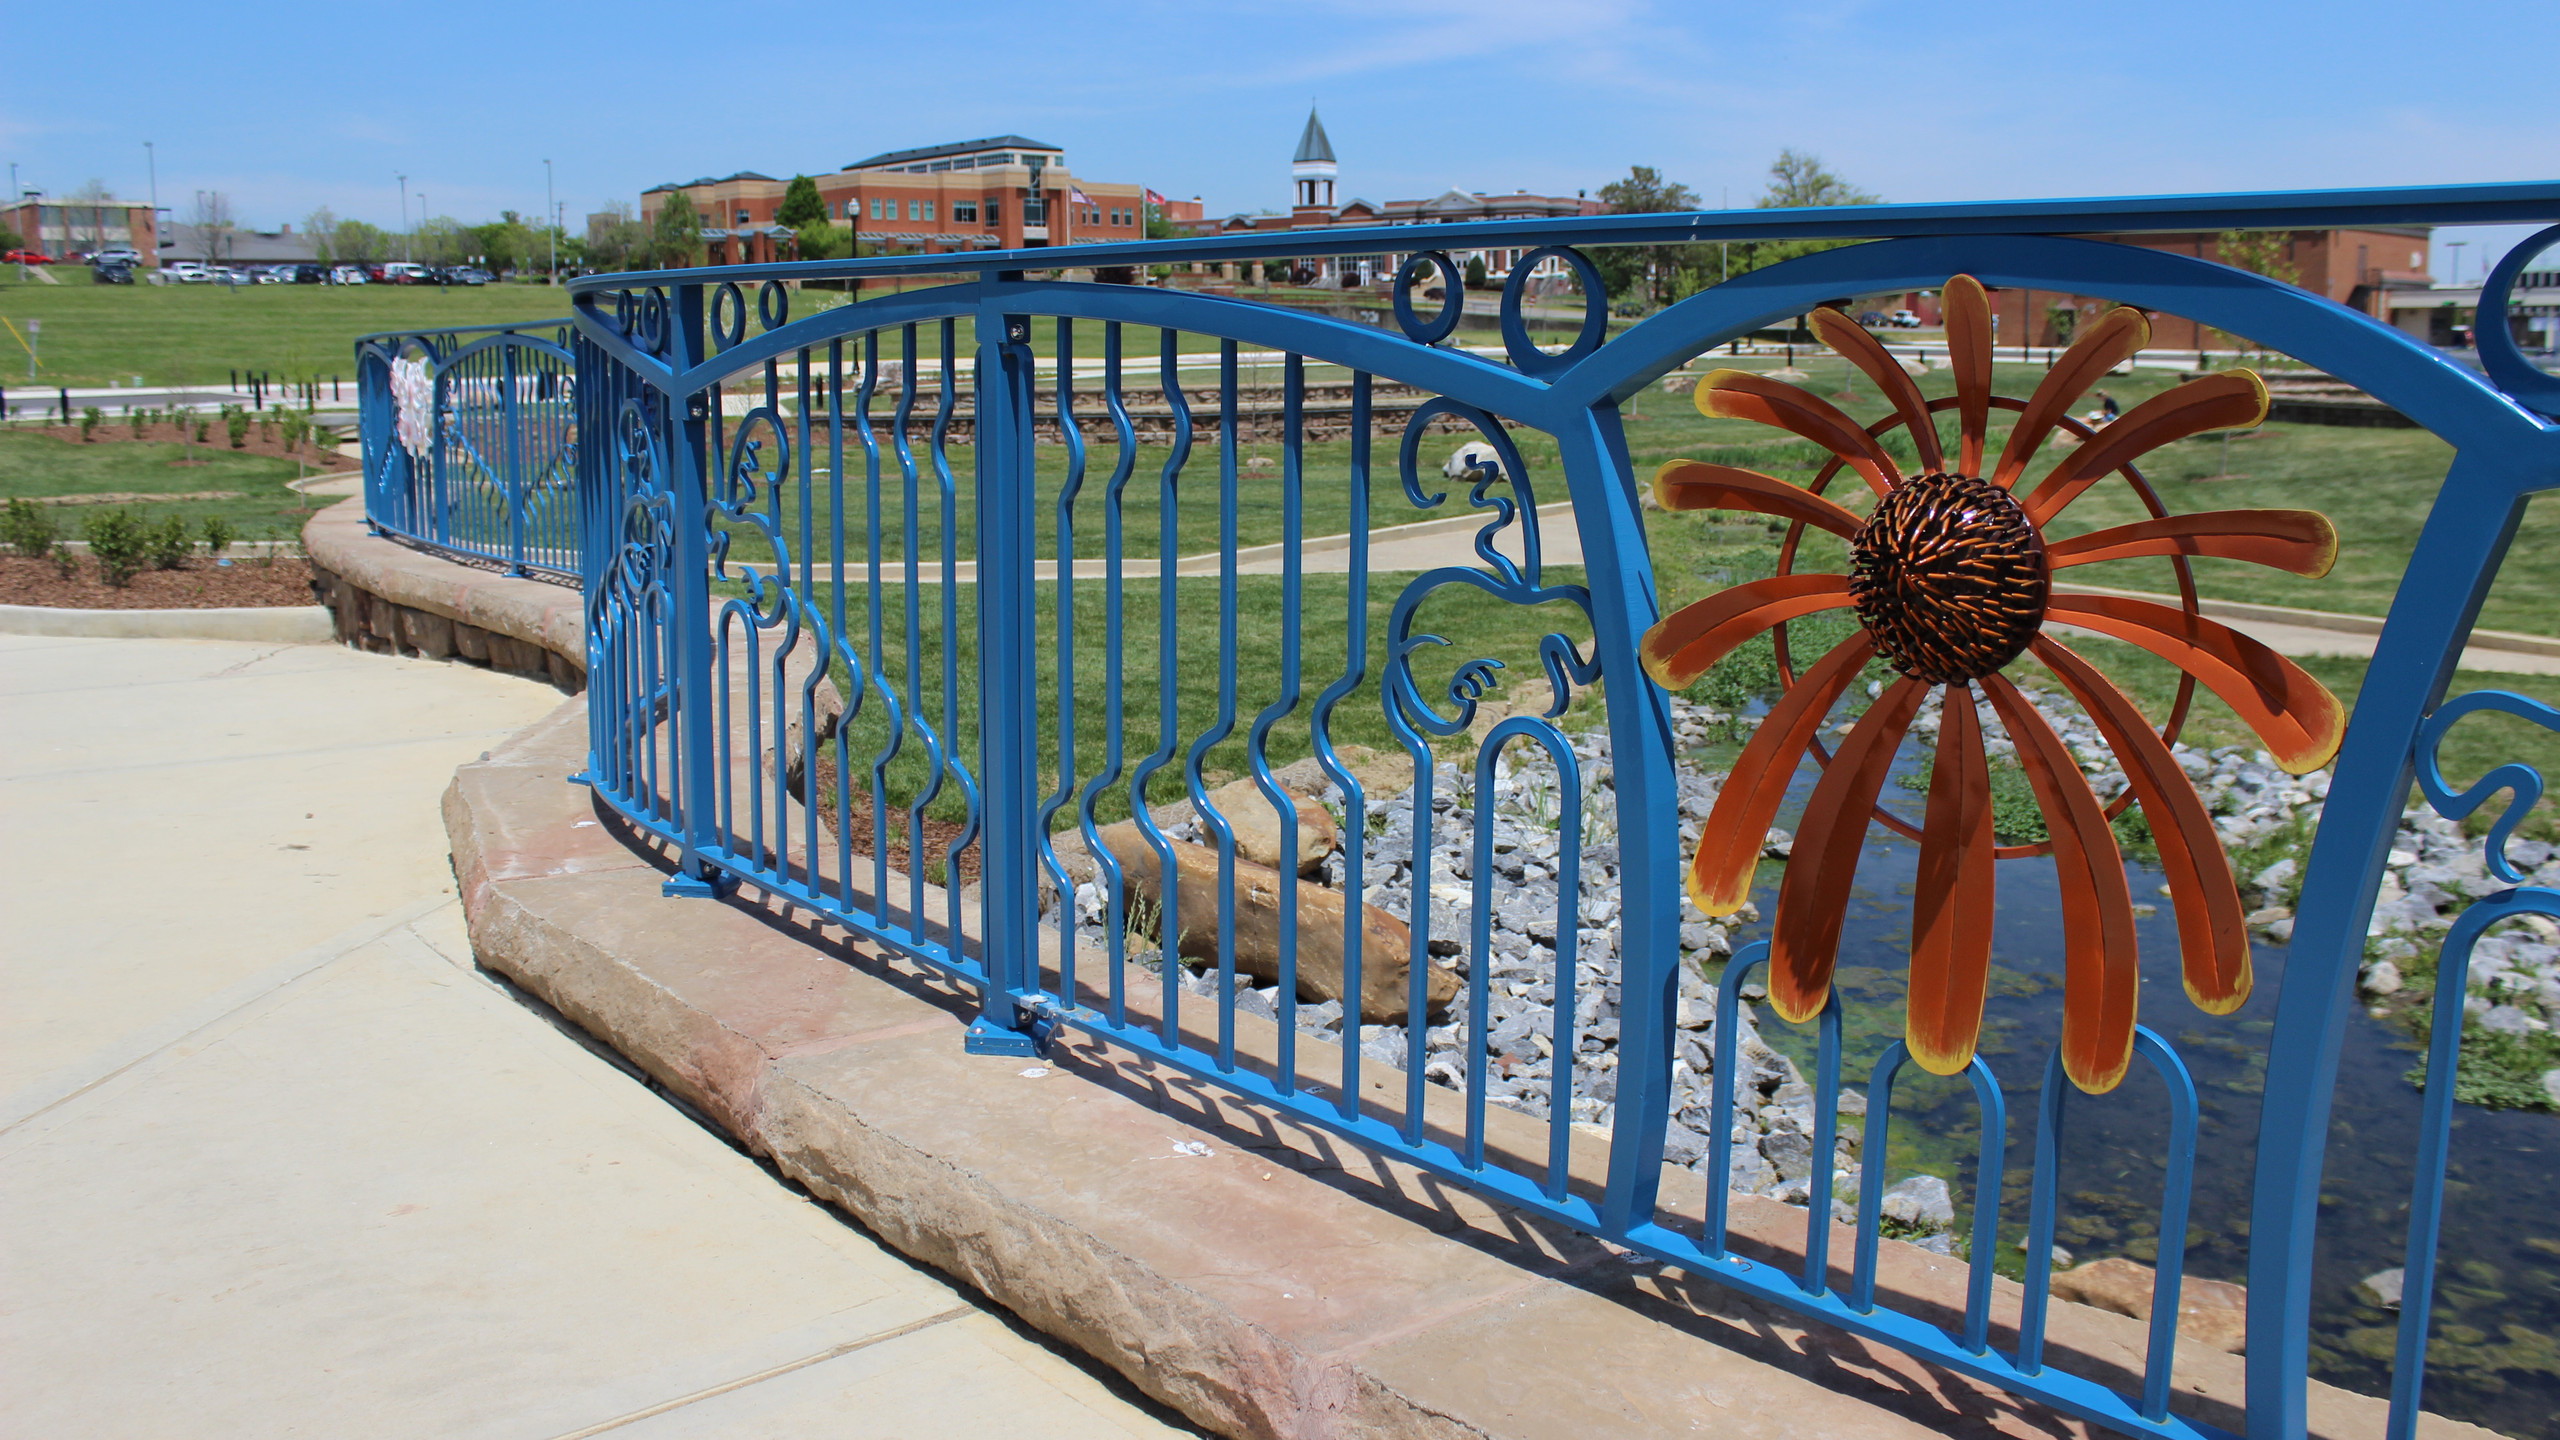 Detail of the Johnson City railing